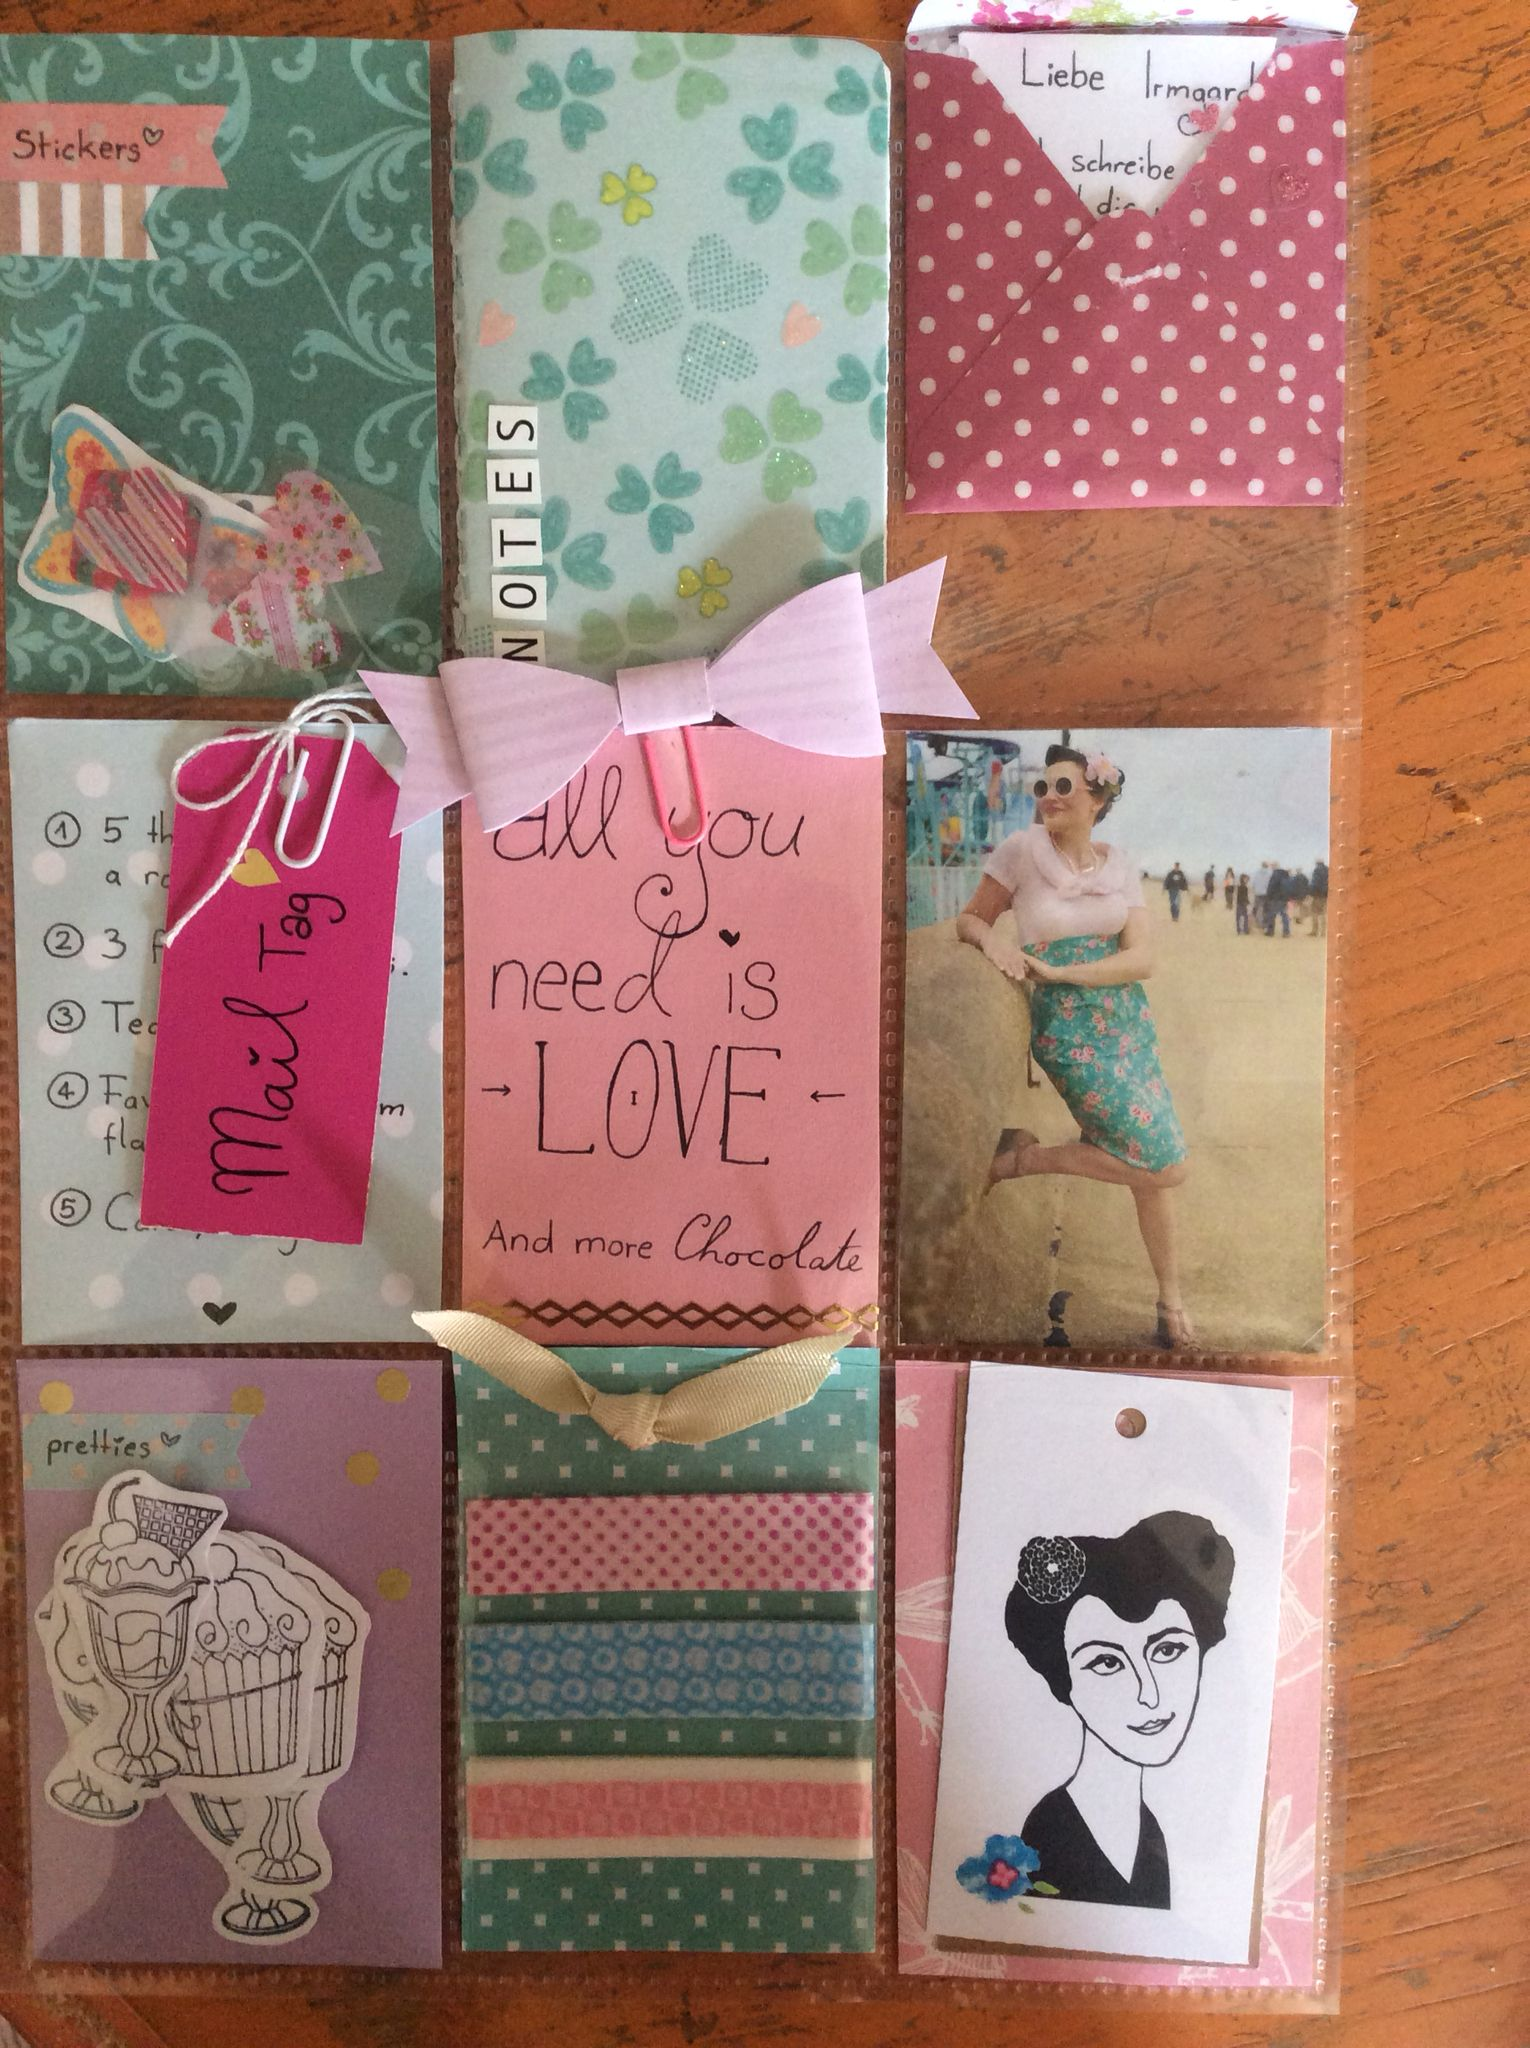 14+ Letter boxes for treats near me ideas in 2021